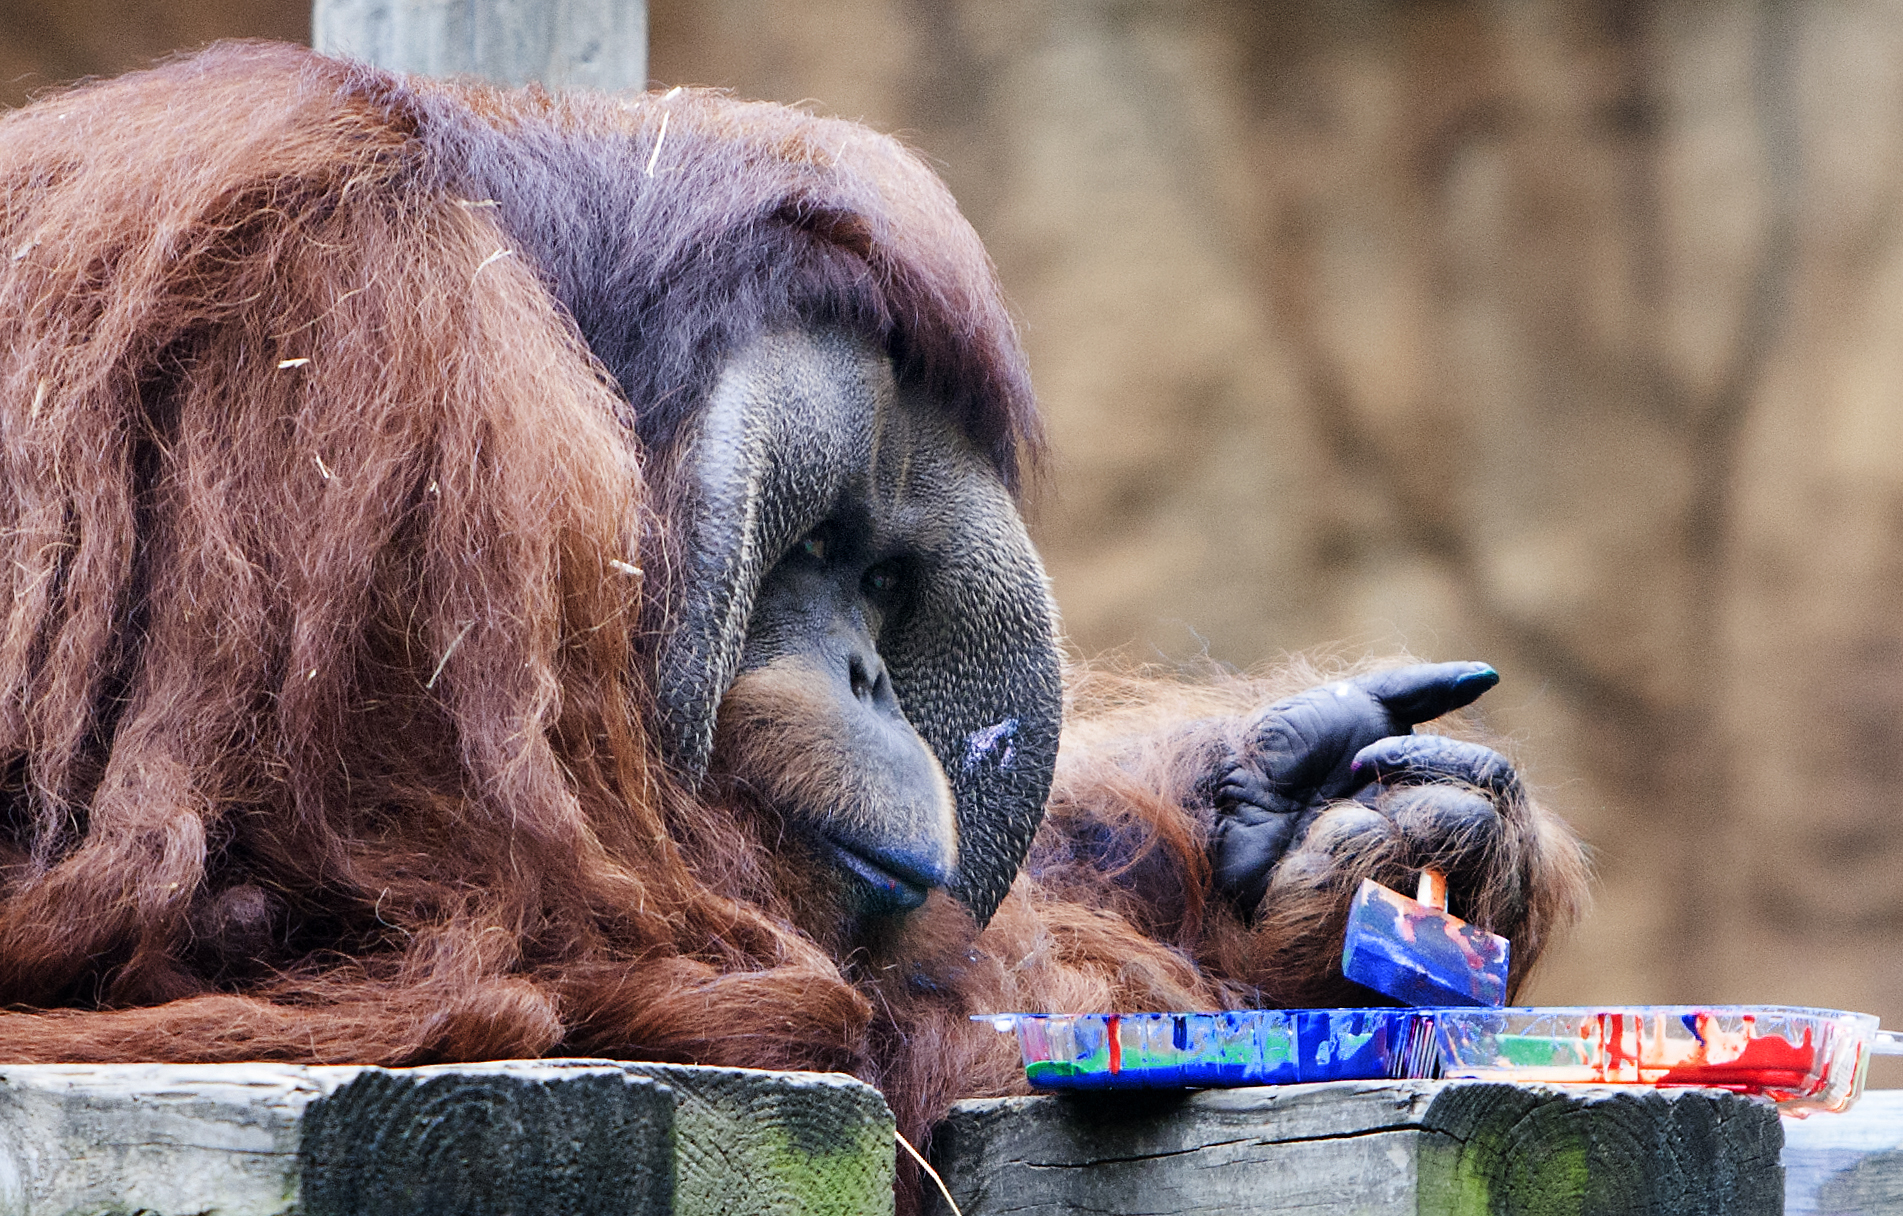 Houston Zoo Finds Out Orangutan Is Obsessed With Painting